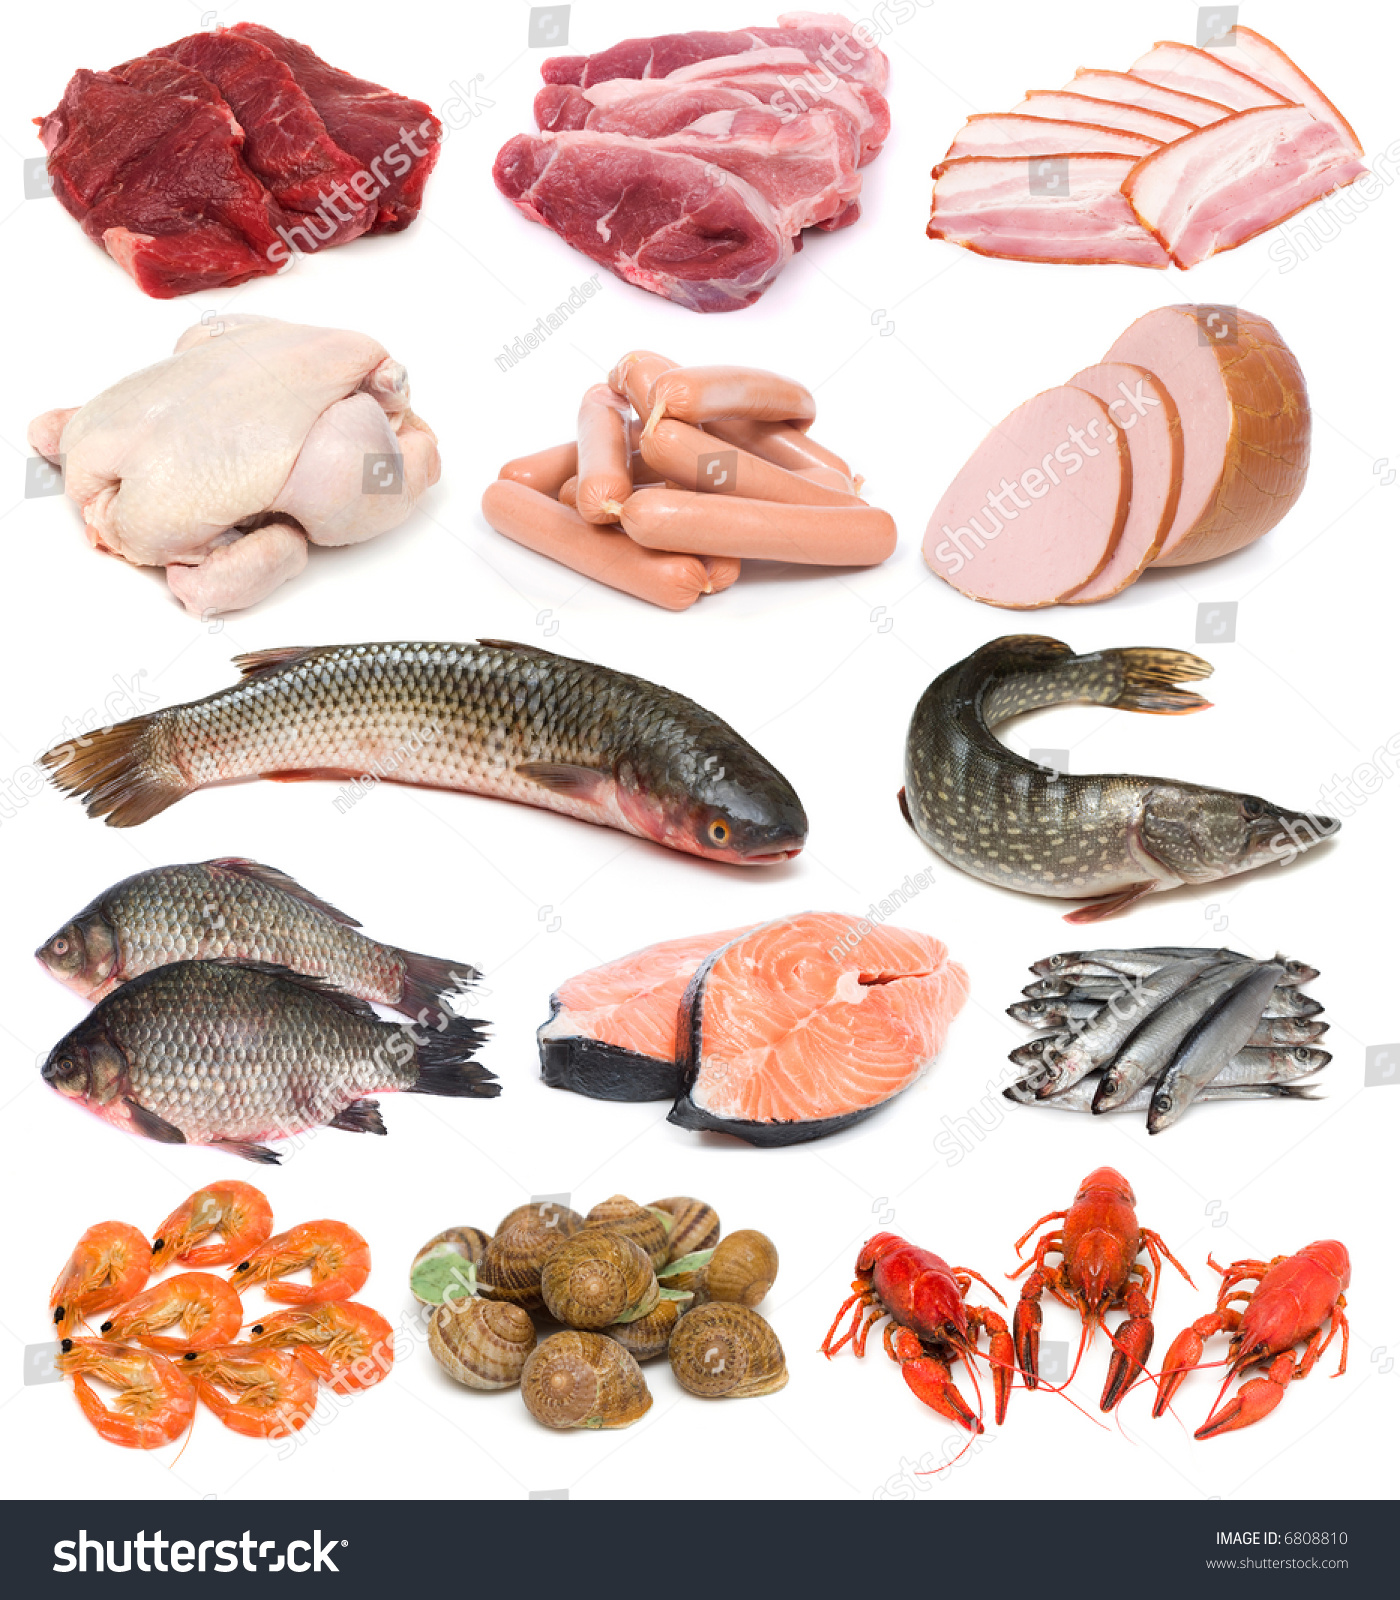 Image set fresh meat fish seafood stock photo 6808810 for Is fish seafood